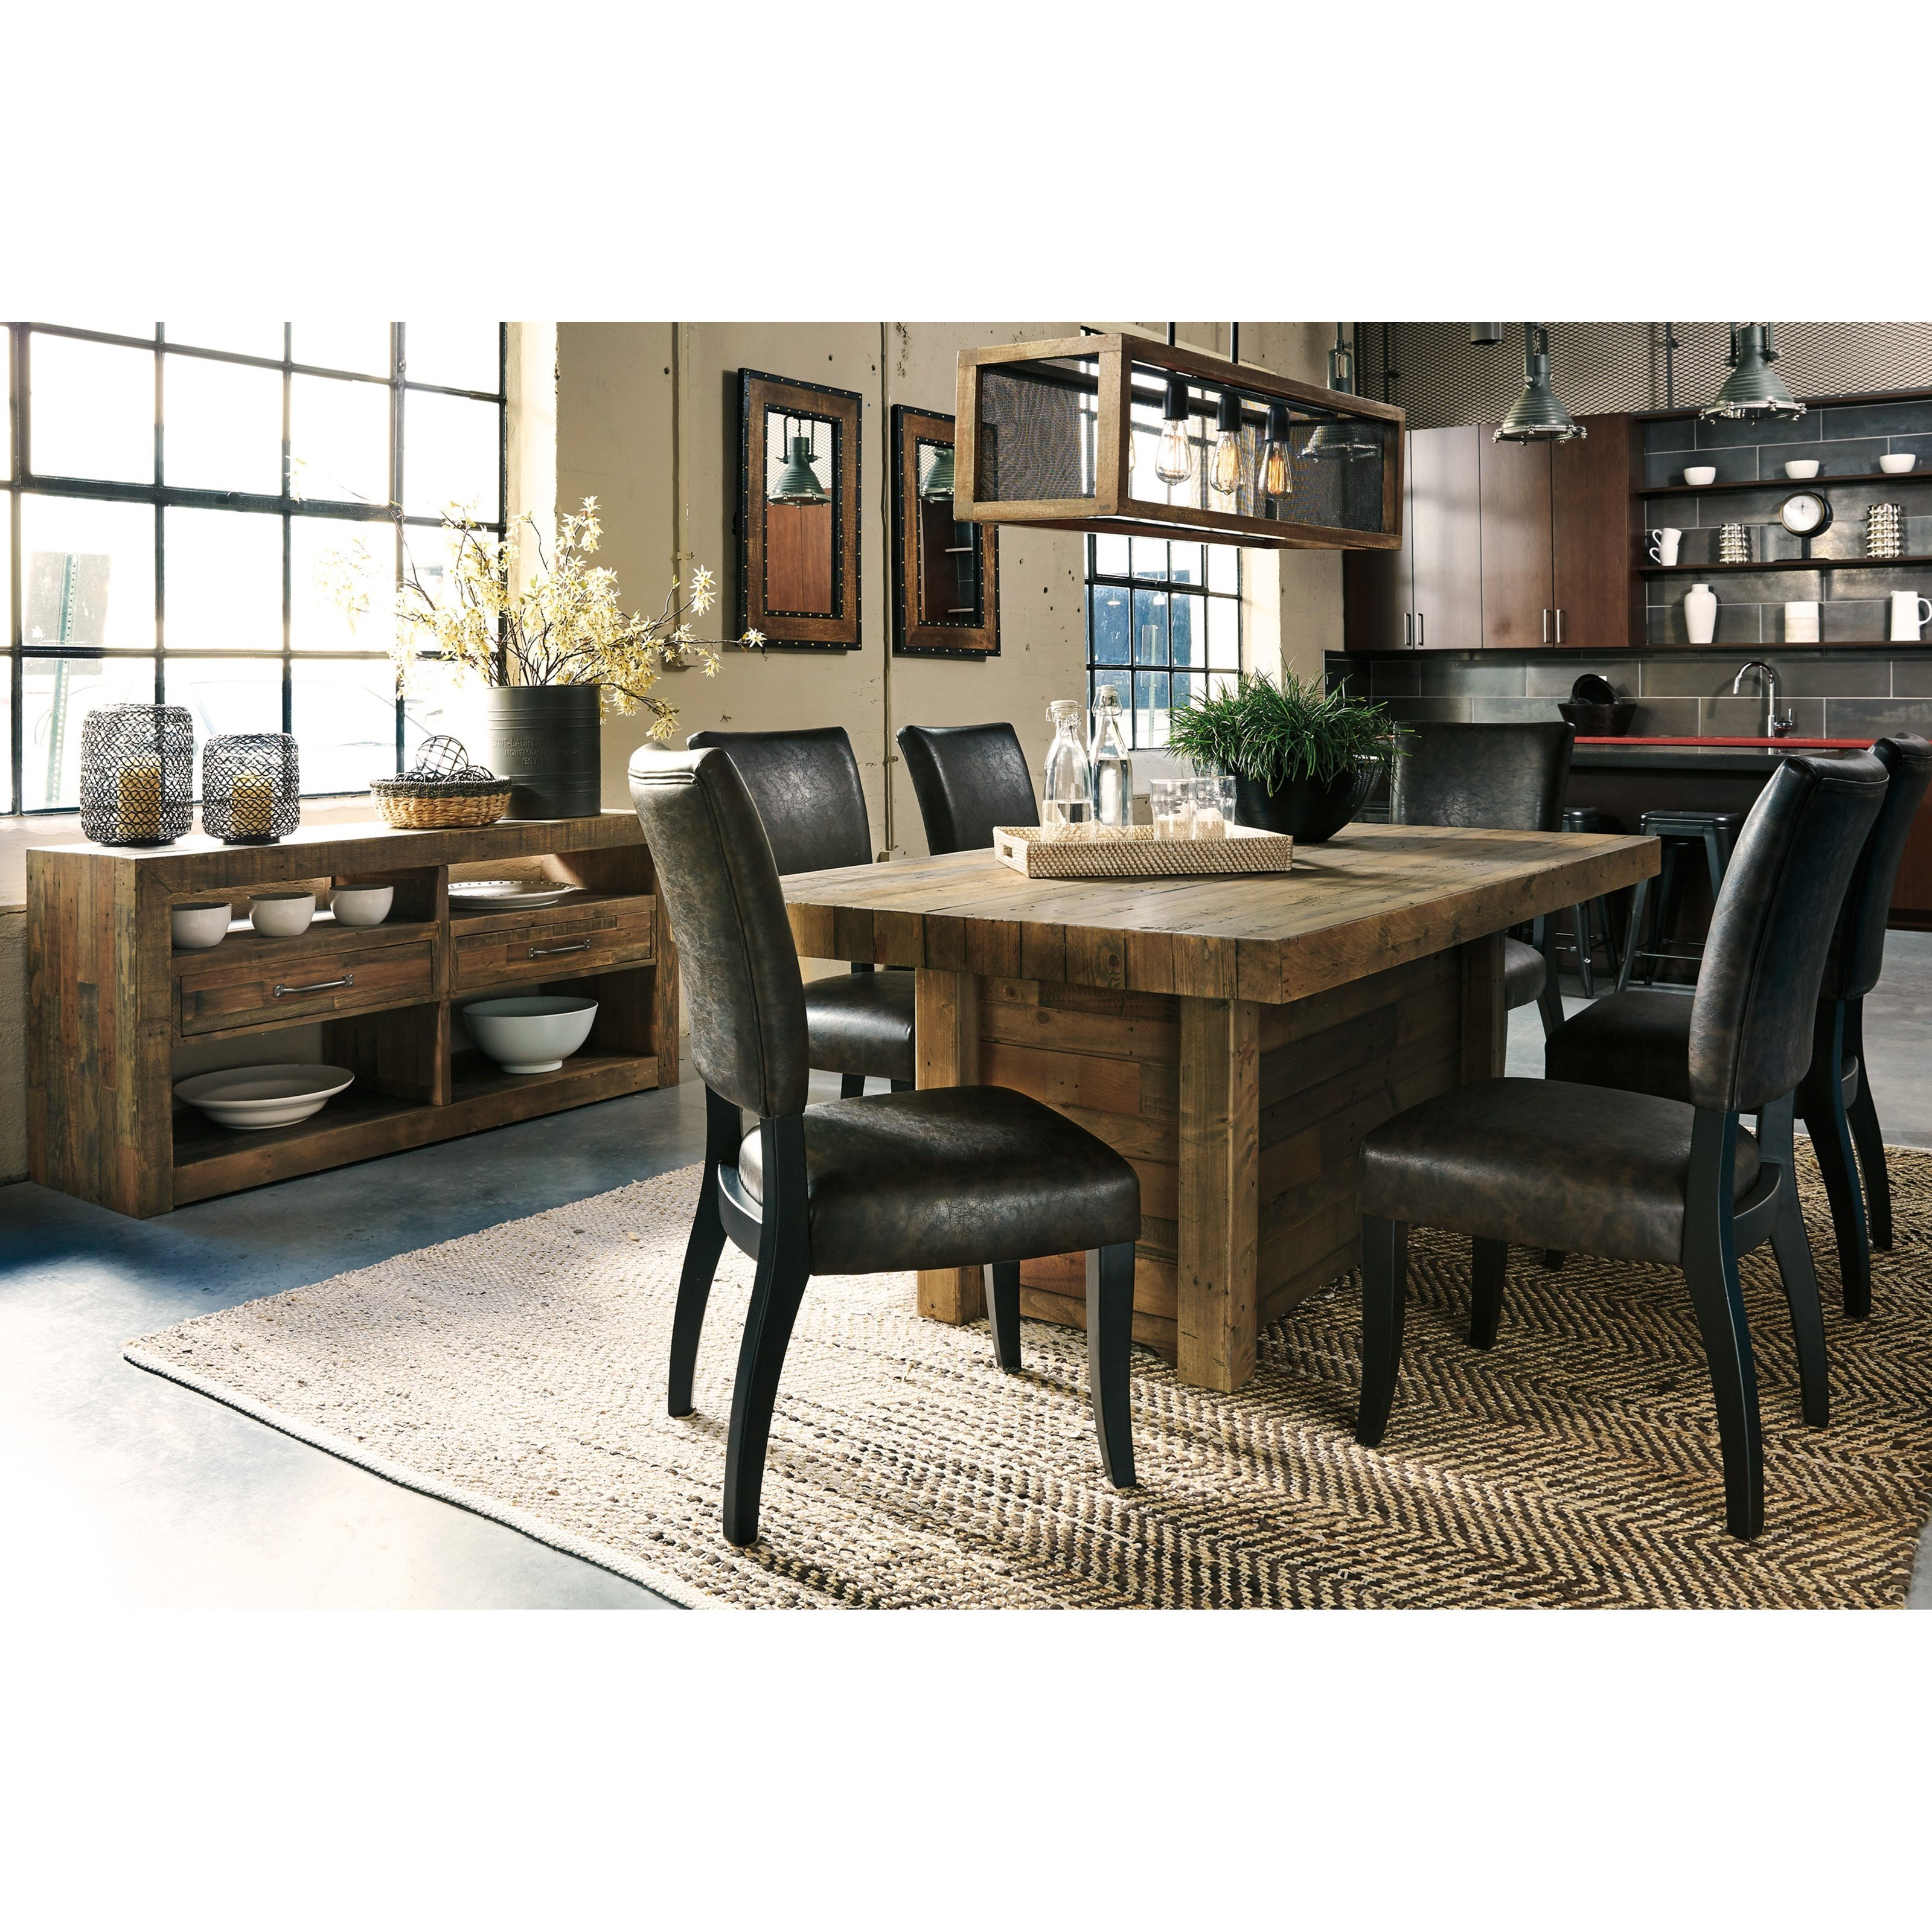 Signature design by ashley sommerford casual dining room for Casual dining room